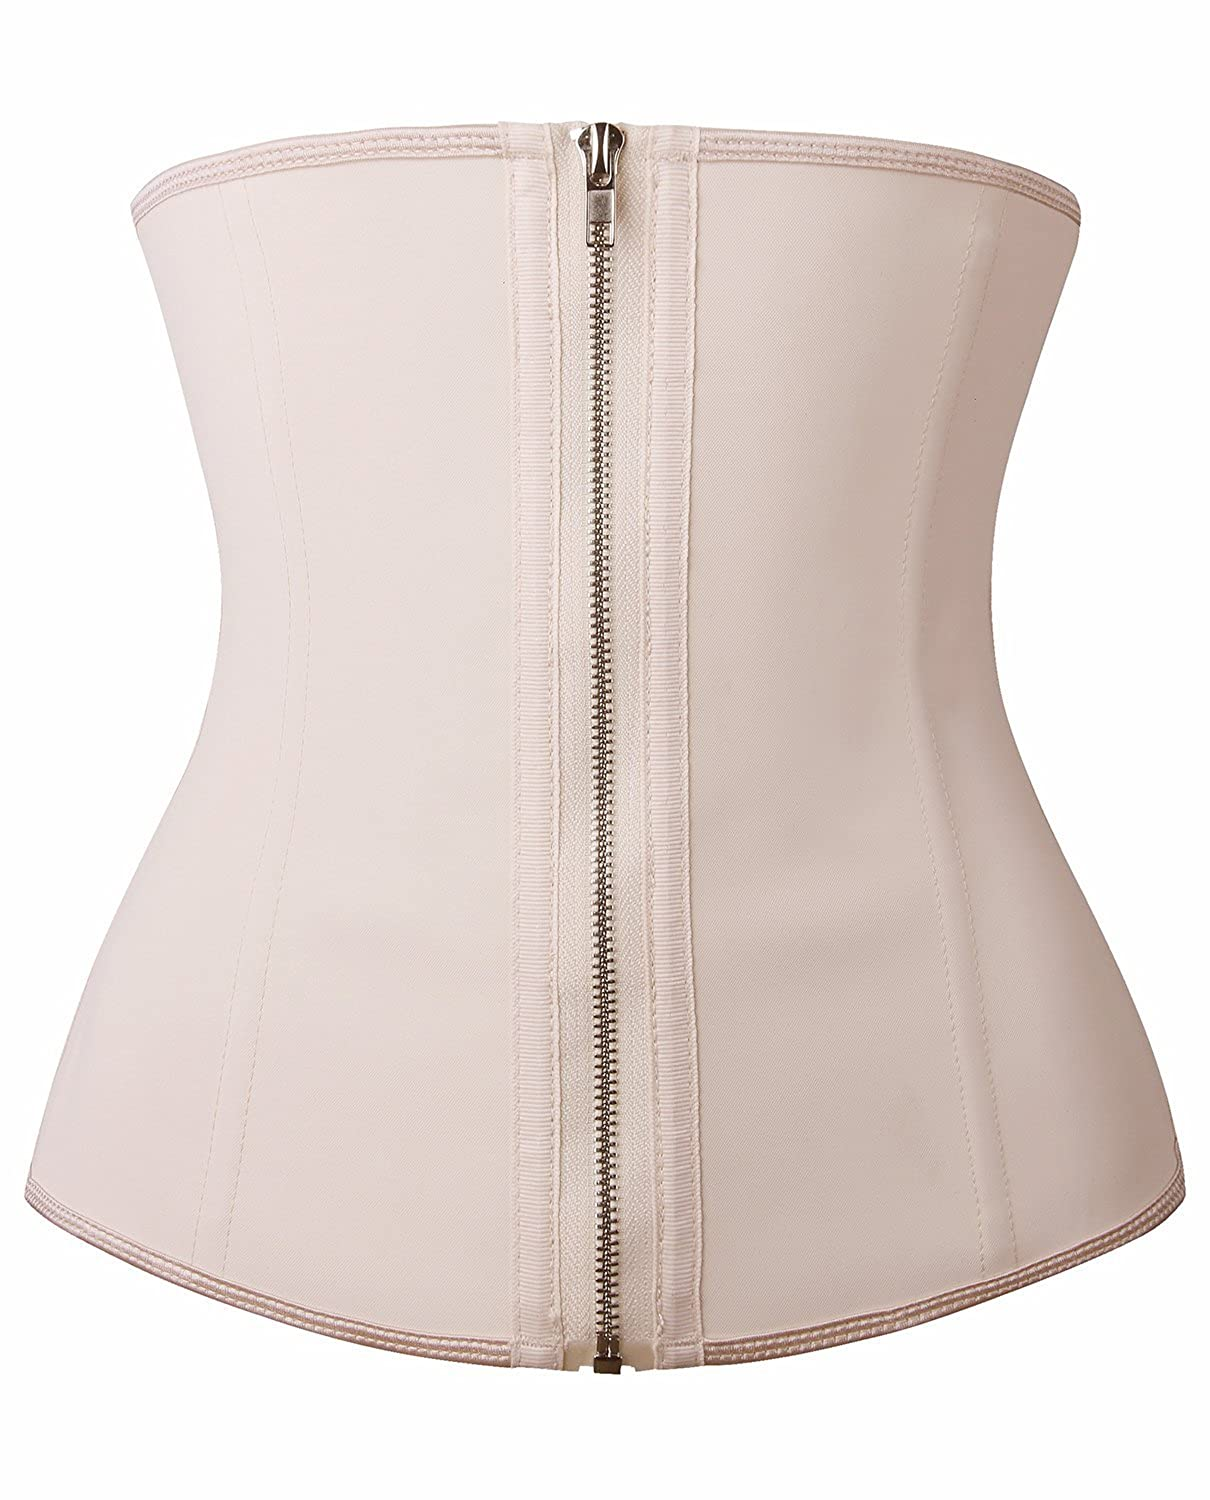 c93e17a98c High Quality durable Latex waist trainer corsets with 9 spiral felixboning  supports